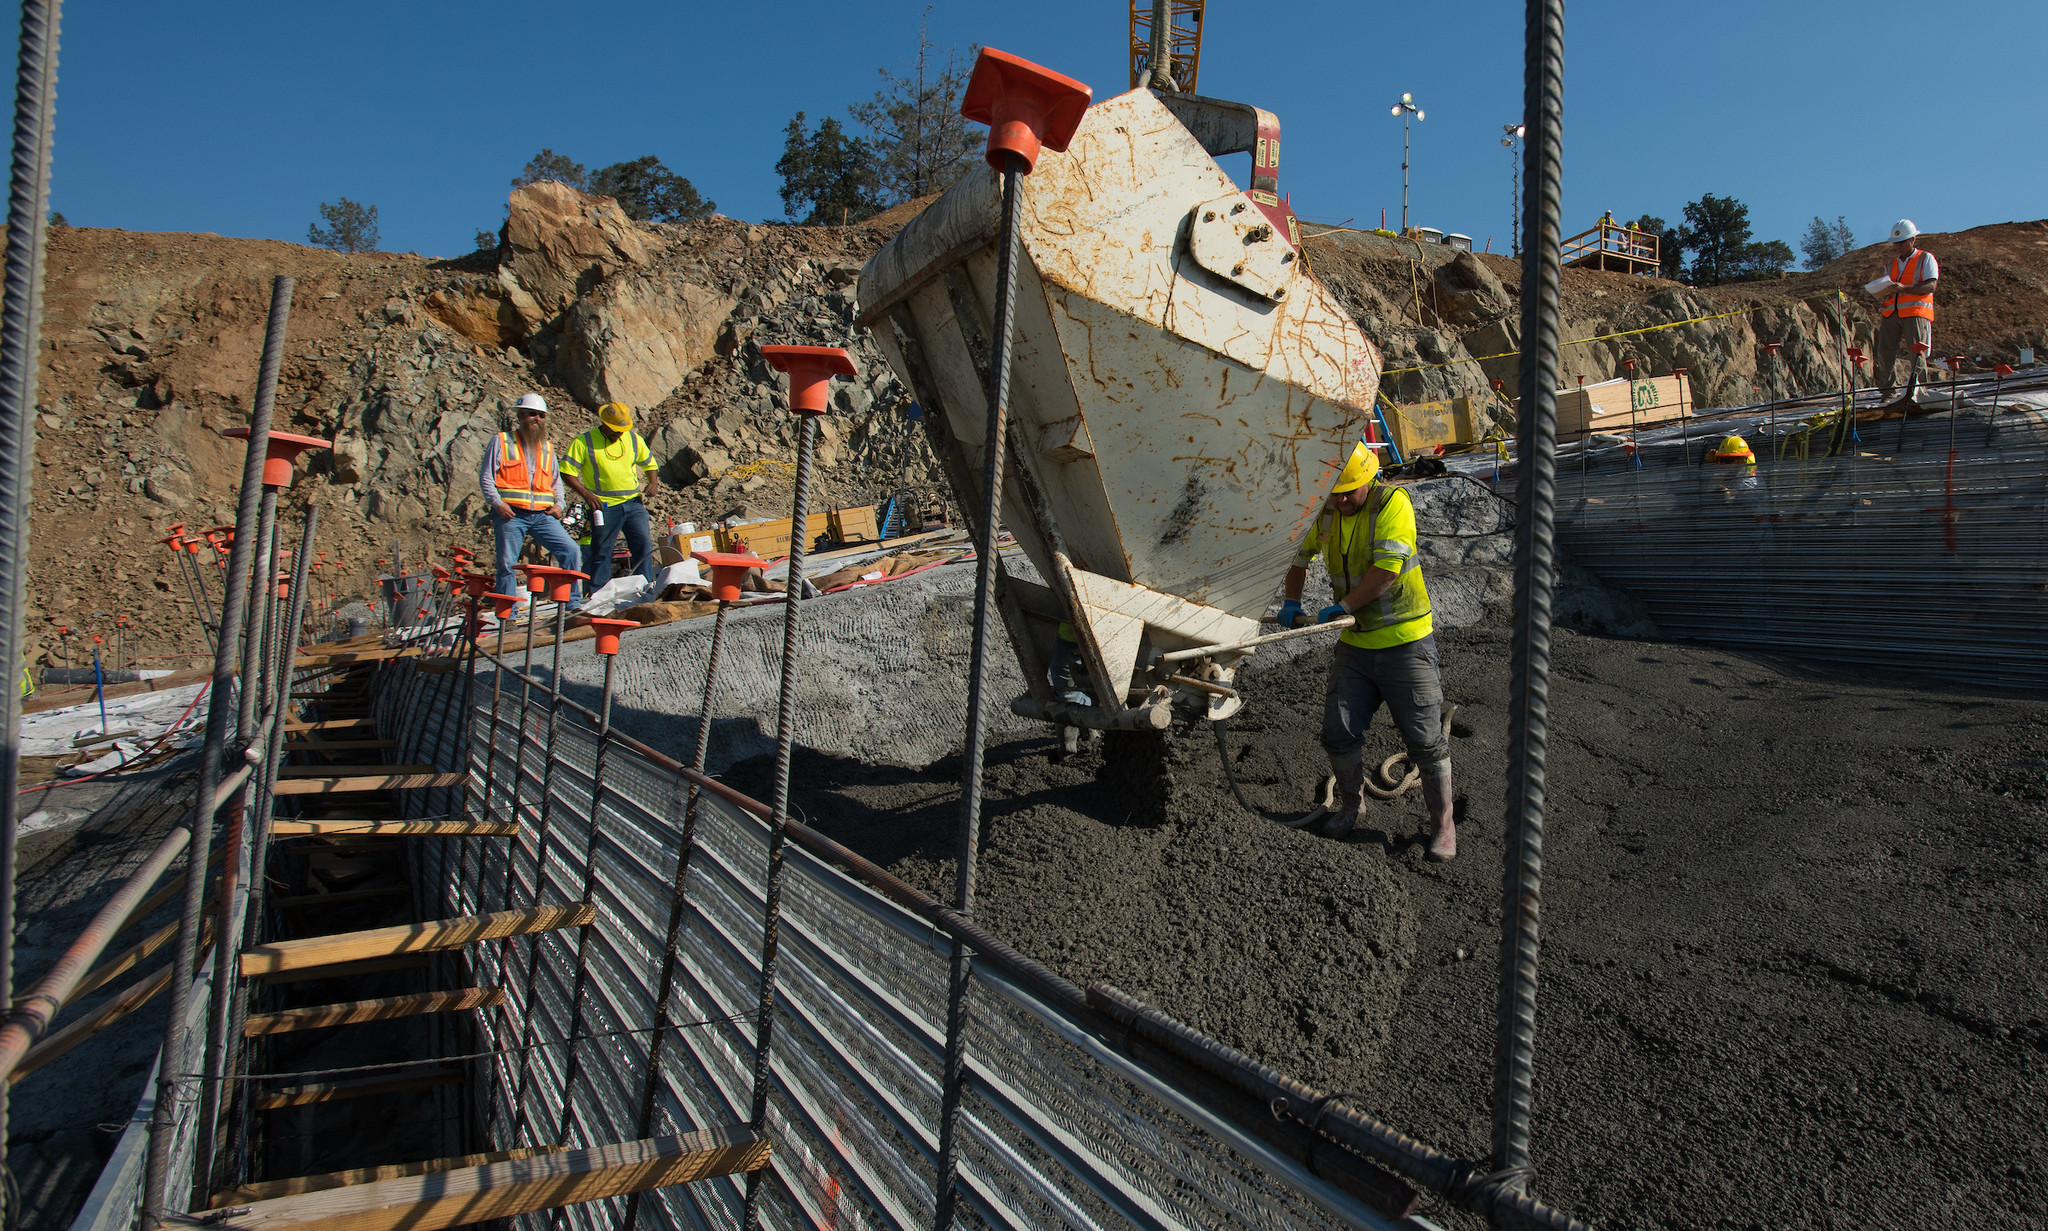 Leveling concrete is delivered from a large bucket attached to a crane on the lower chute of the Lake Oroville flood control spillway on July 14.